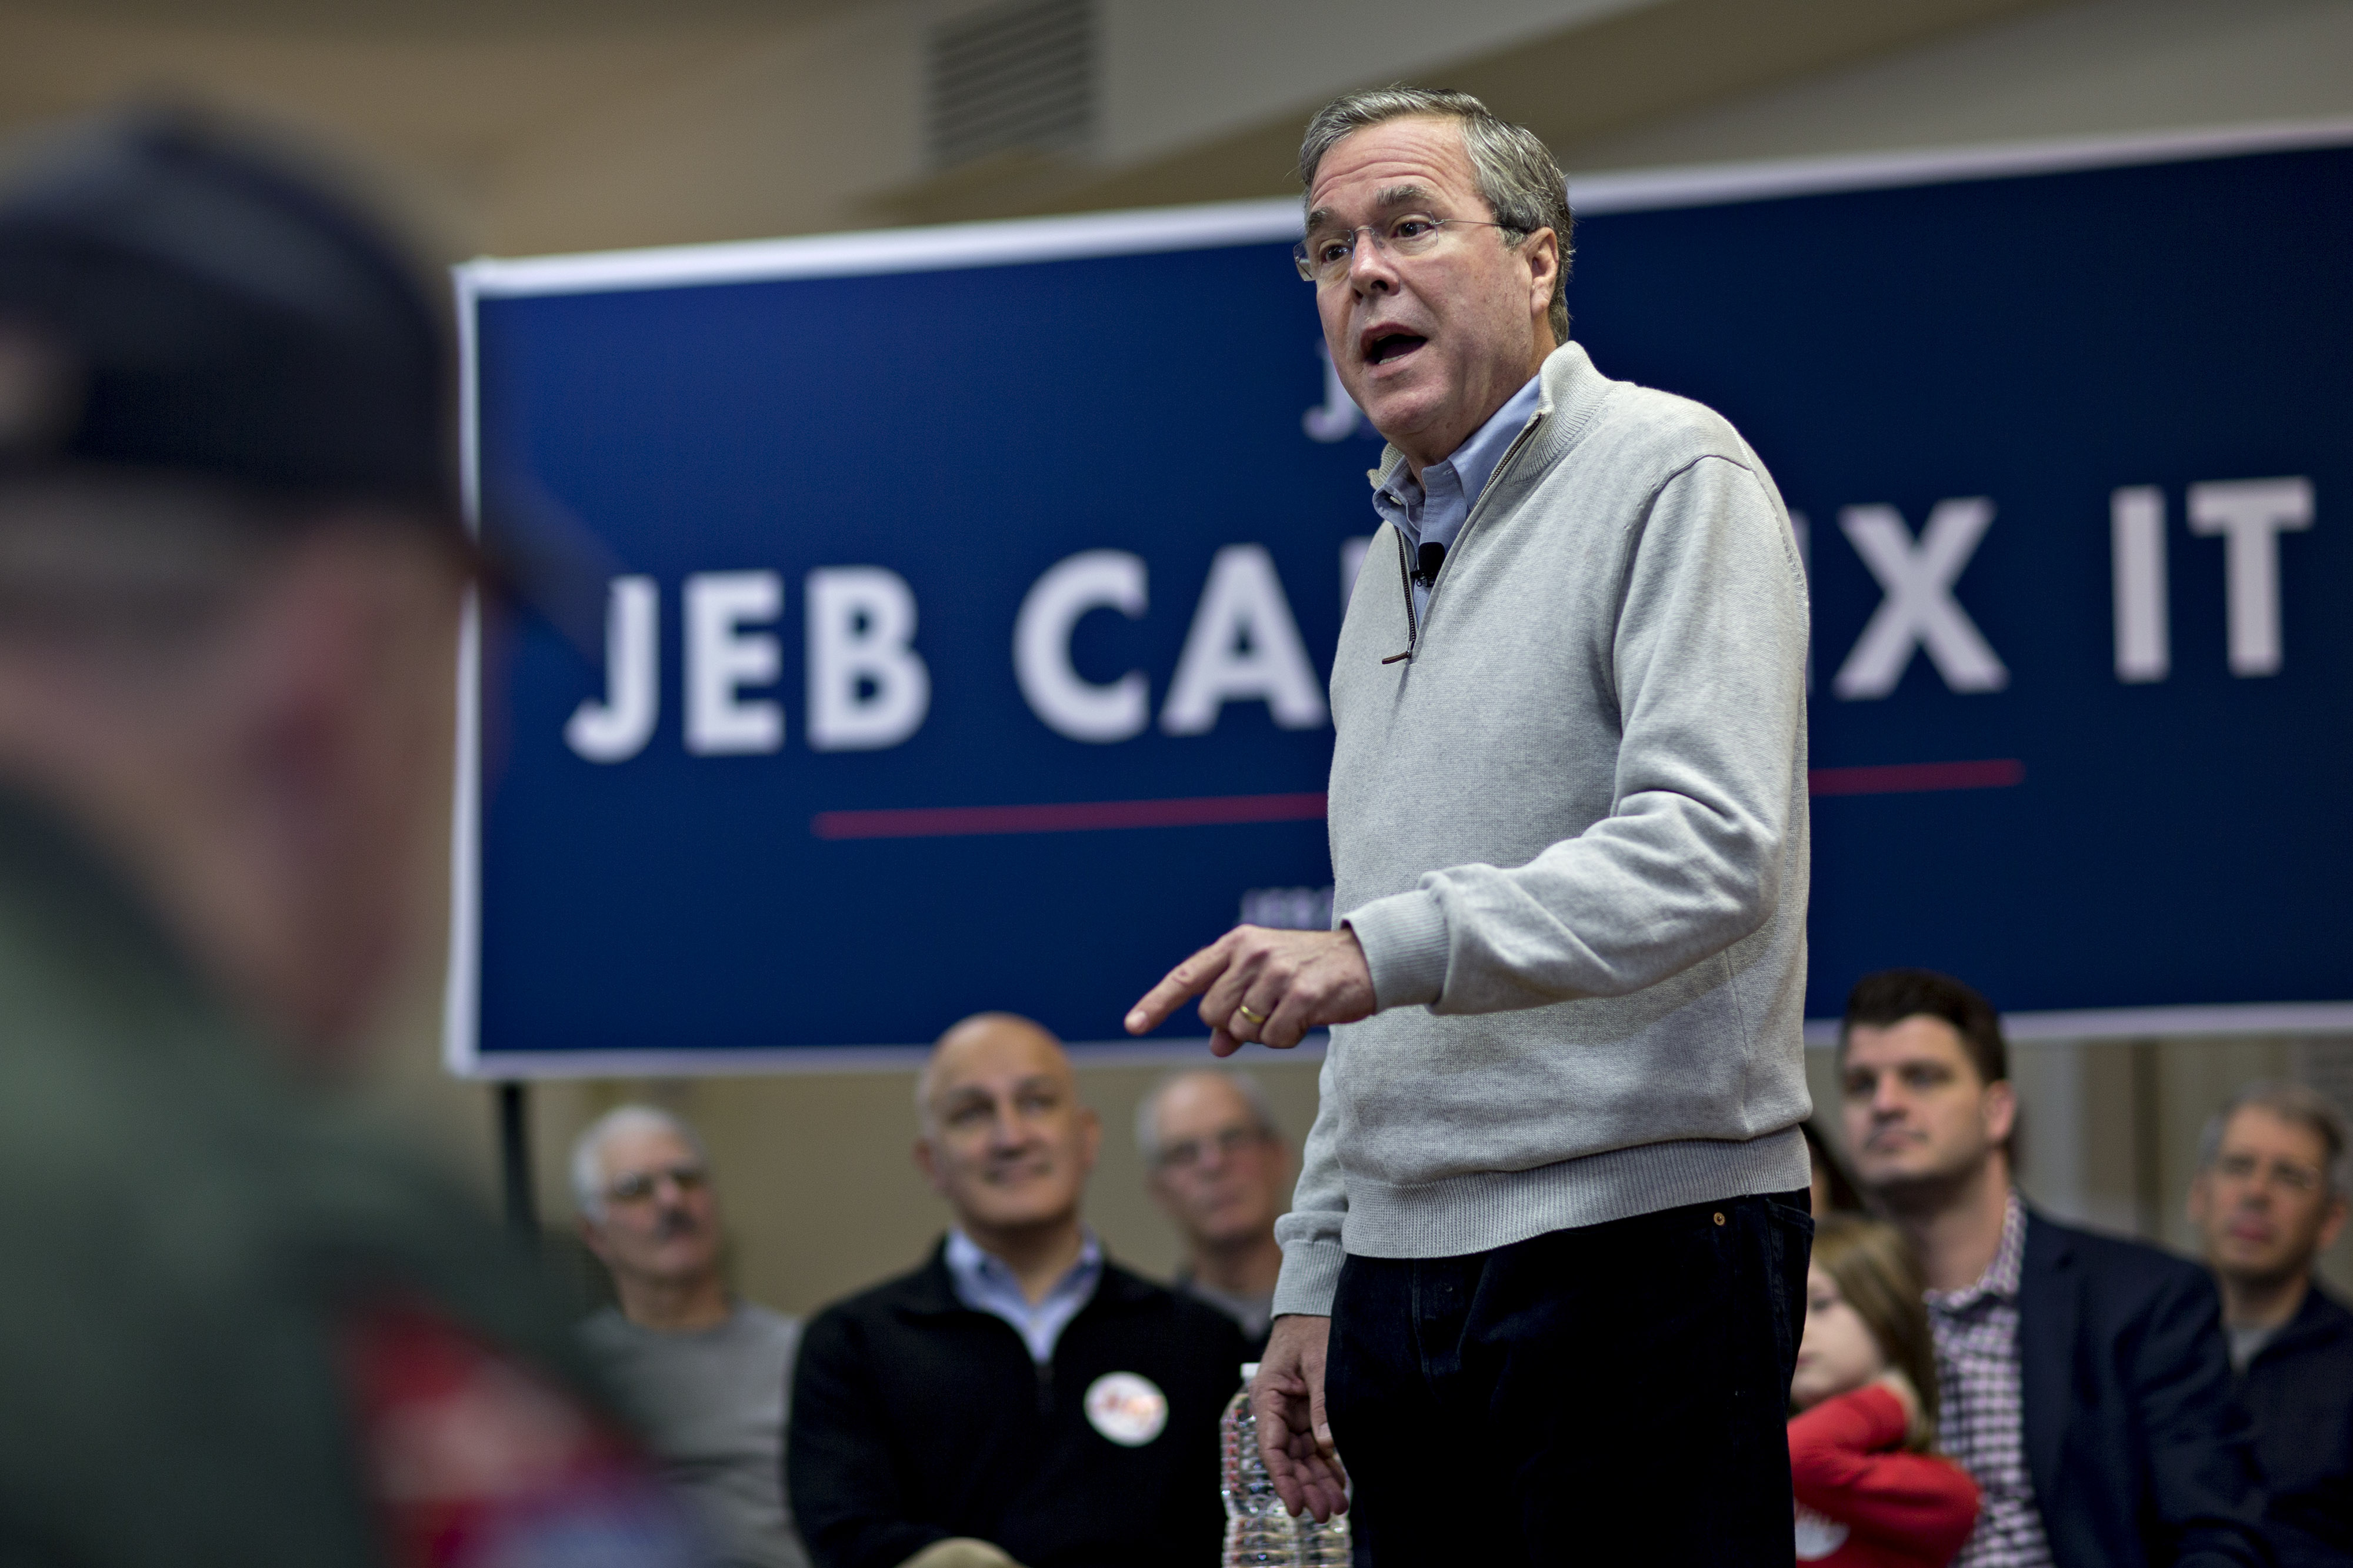 Jeb Bush, former governor of Florida and 2016 Republican presidential candidate, speaks during a town hall campaign stop at the E. Roger Montgomery American Legion Post 81 in Contoocook, New Hampshire, U.S. on Saturday, Dec. 19, 2015. At Tuesday's presidential debate this week Bush lobbed six full-frontal assaults on front-runner Donald Trump, who he at one point dubbed Trump a  chaos candidate.